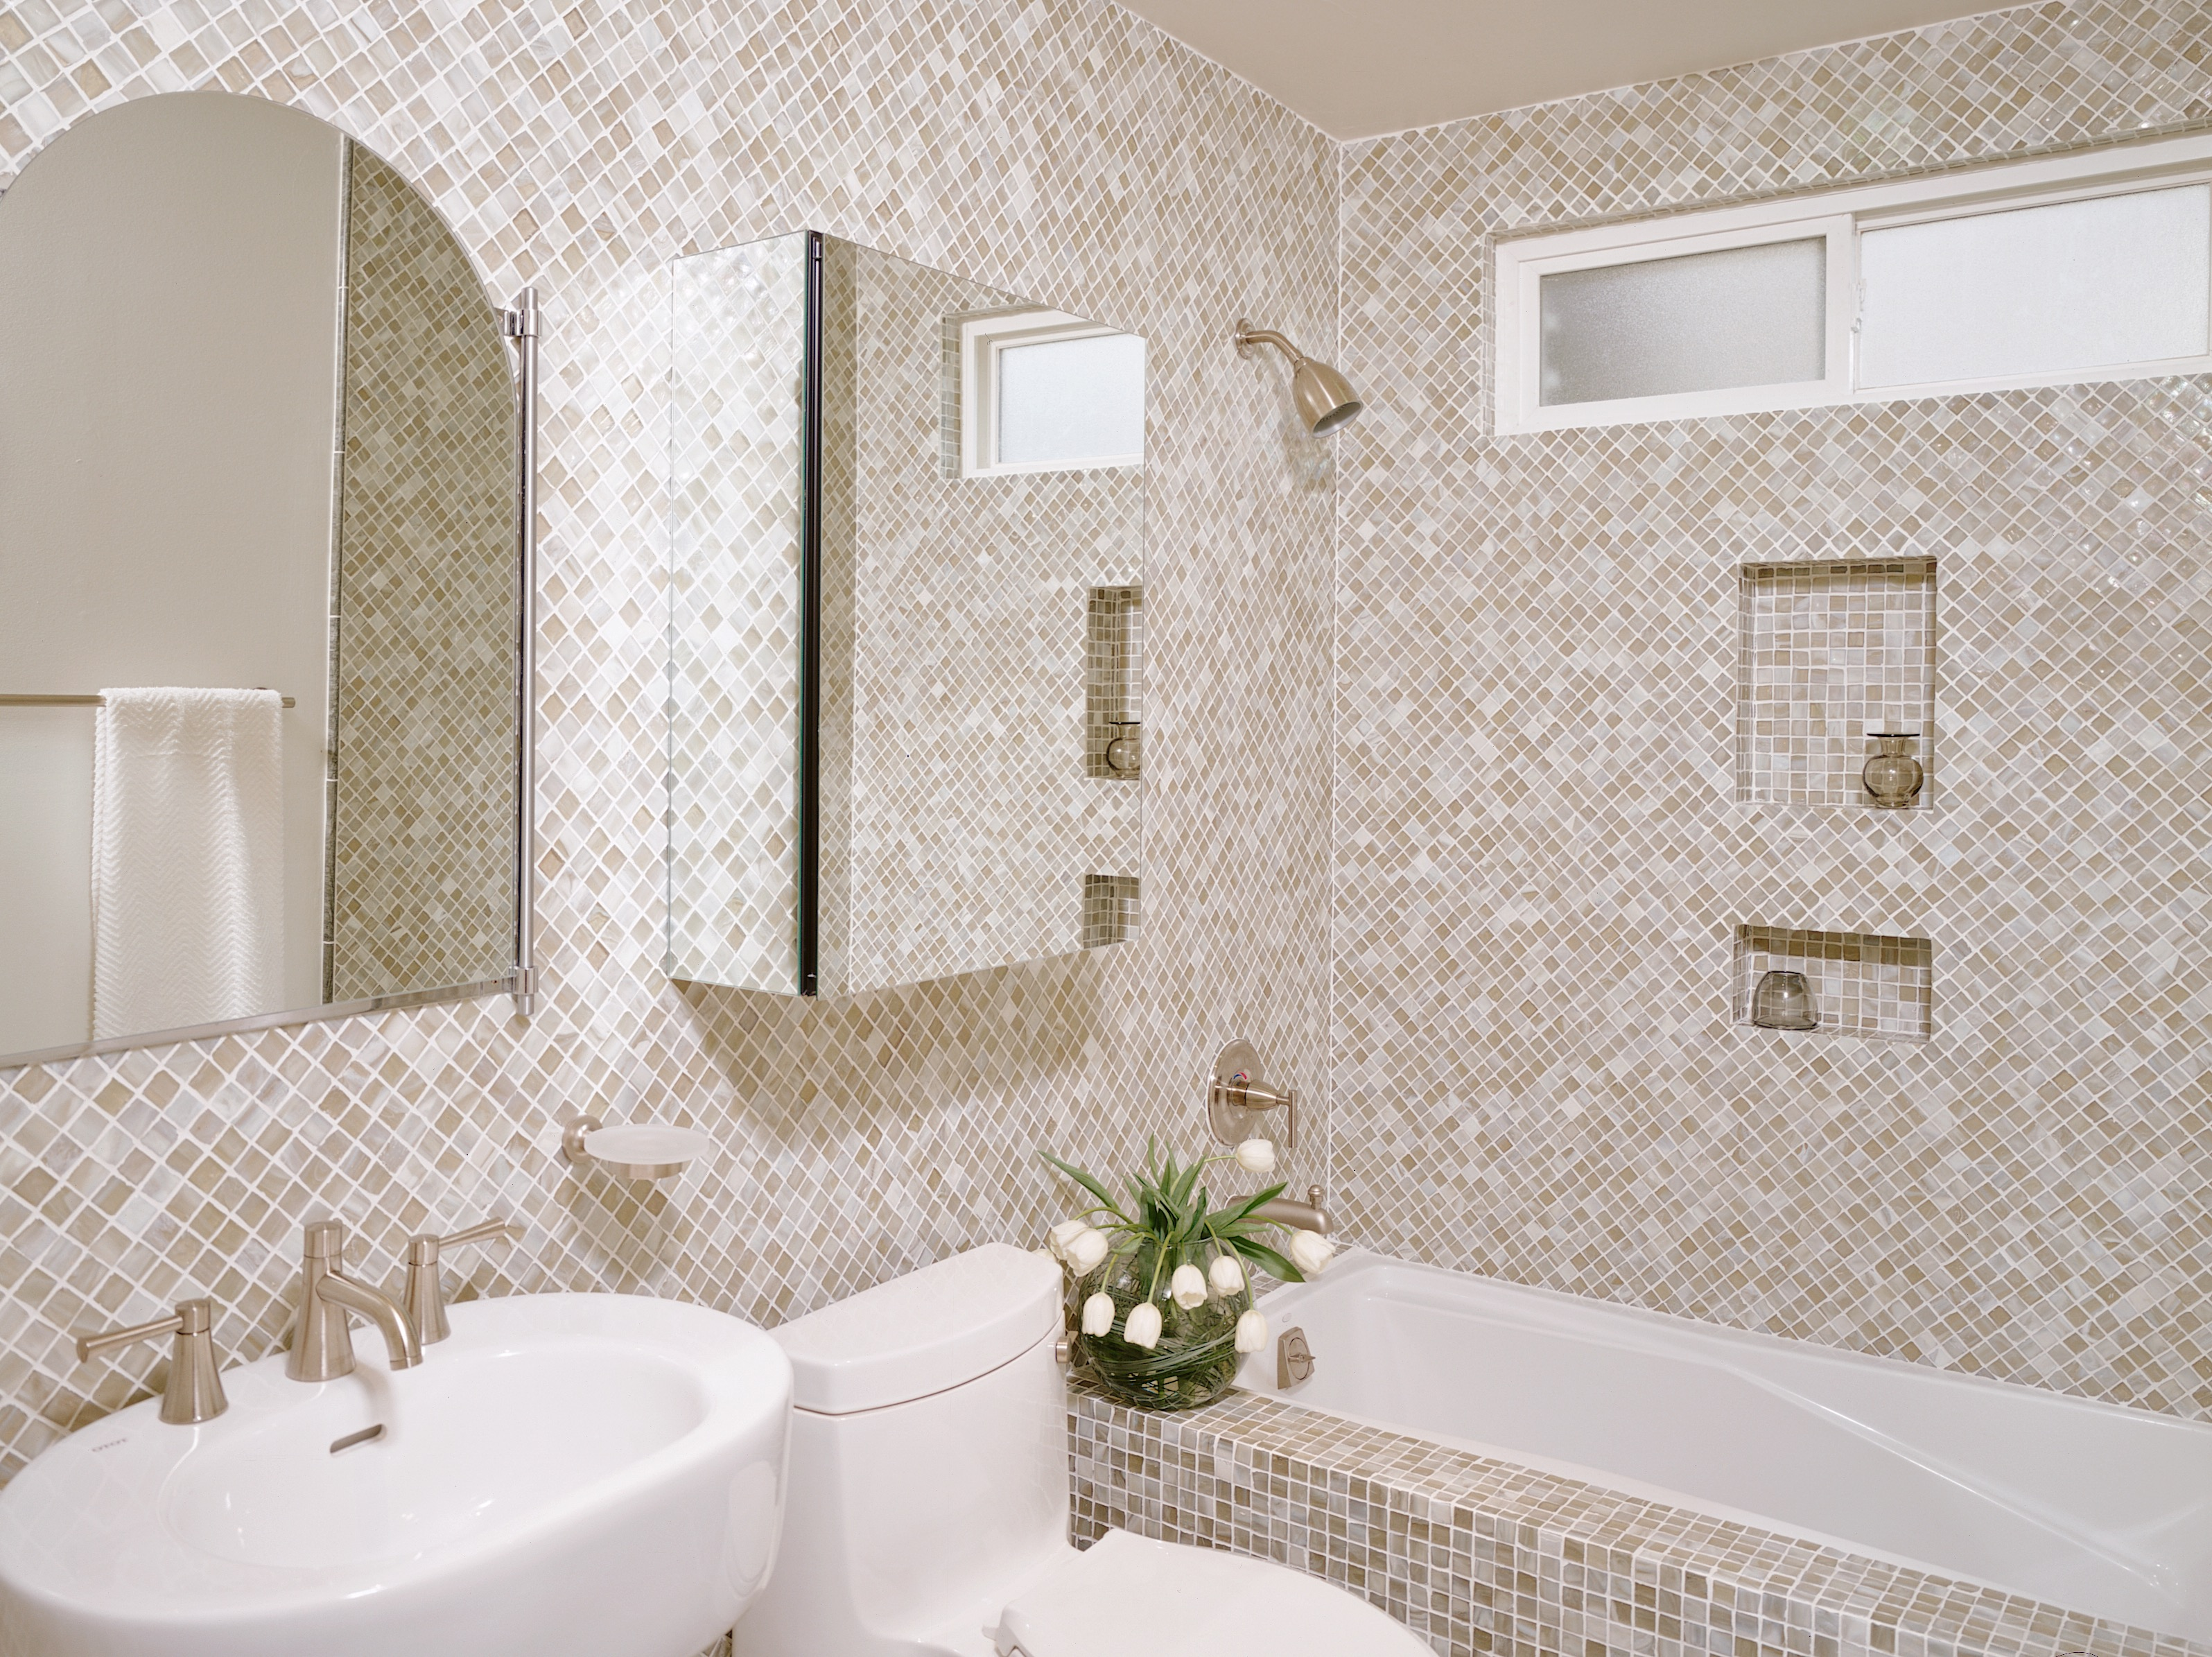 Traditional Bathroom Shower And Tub Combo With Ceramic Tile Wall Design (View 19 of 19)